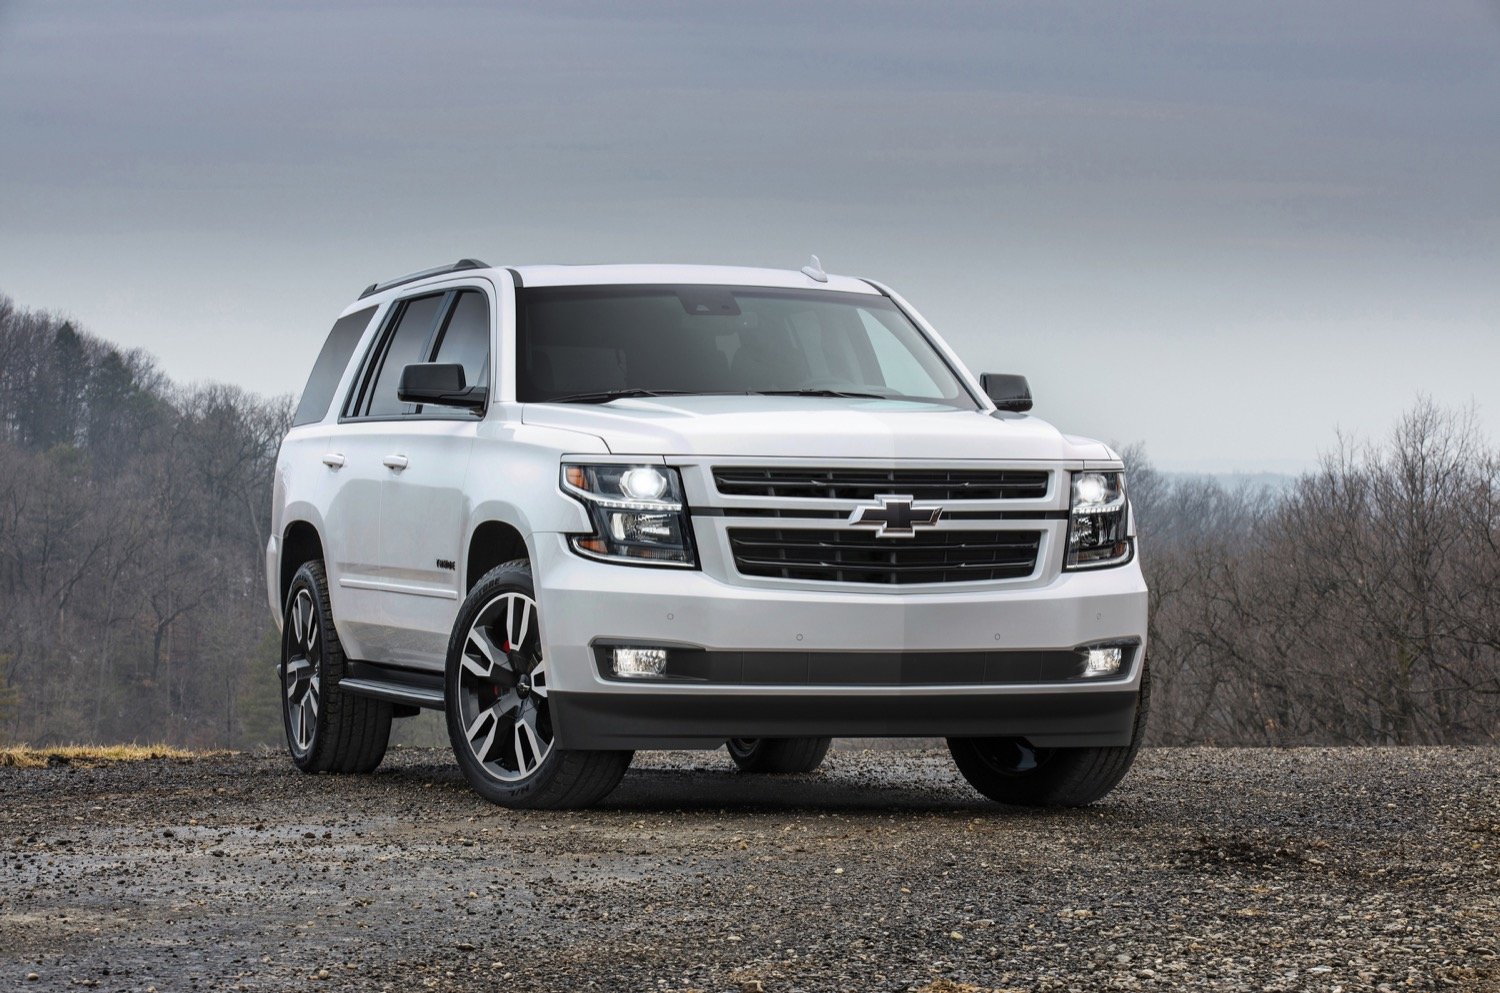 2018 tahoe rst 6 2l performance edition